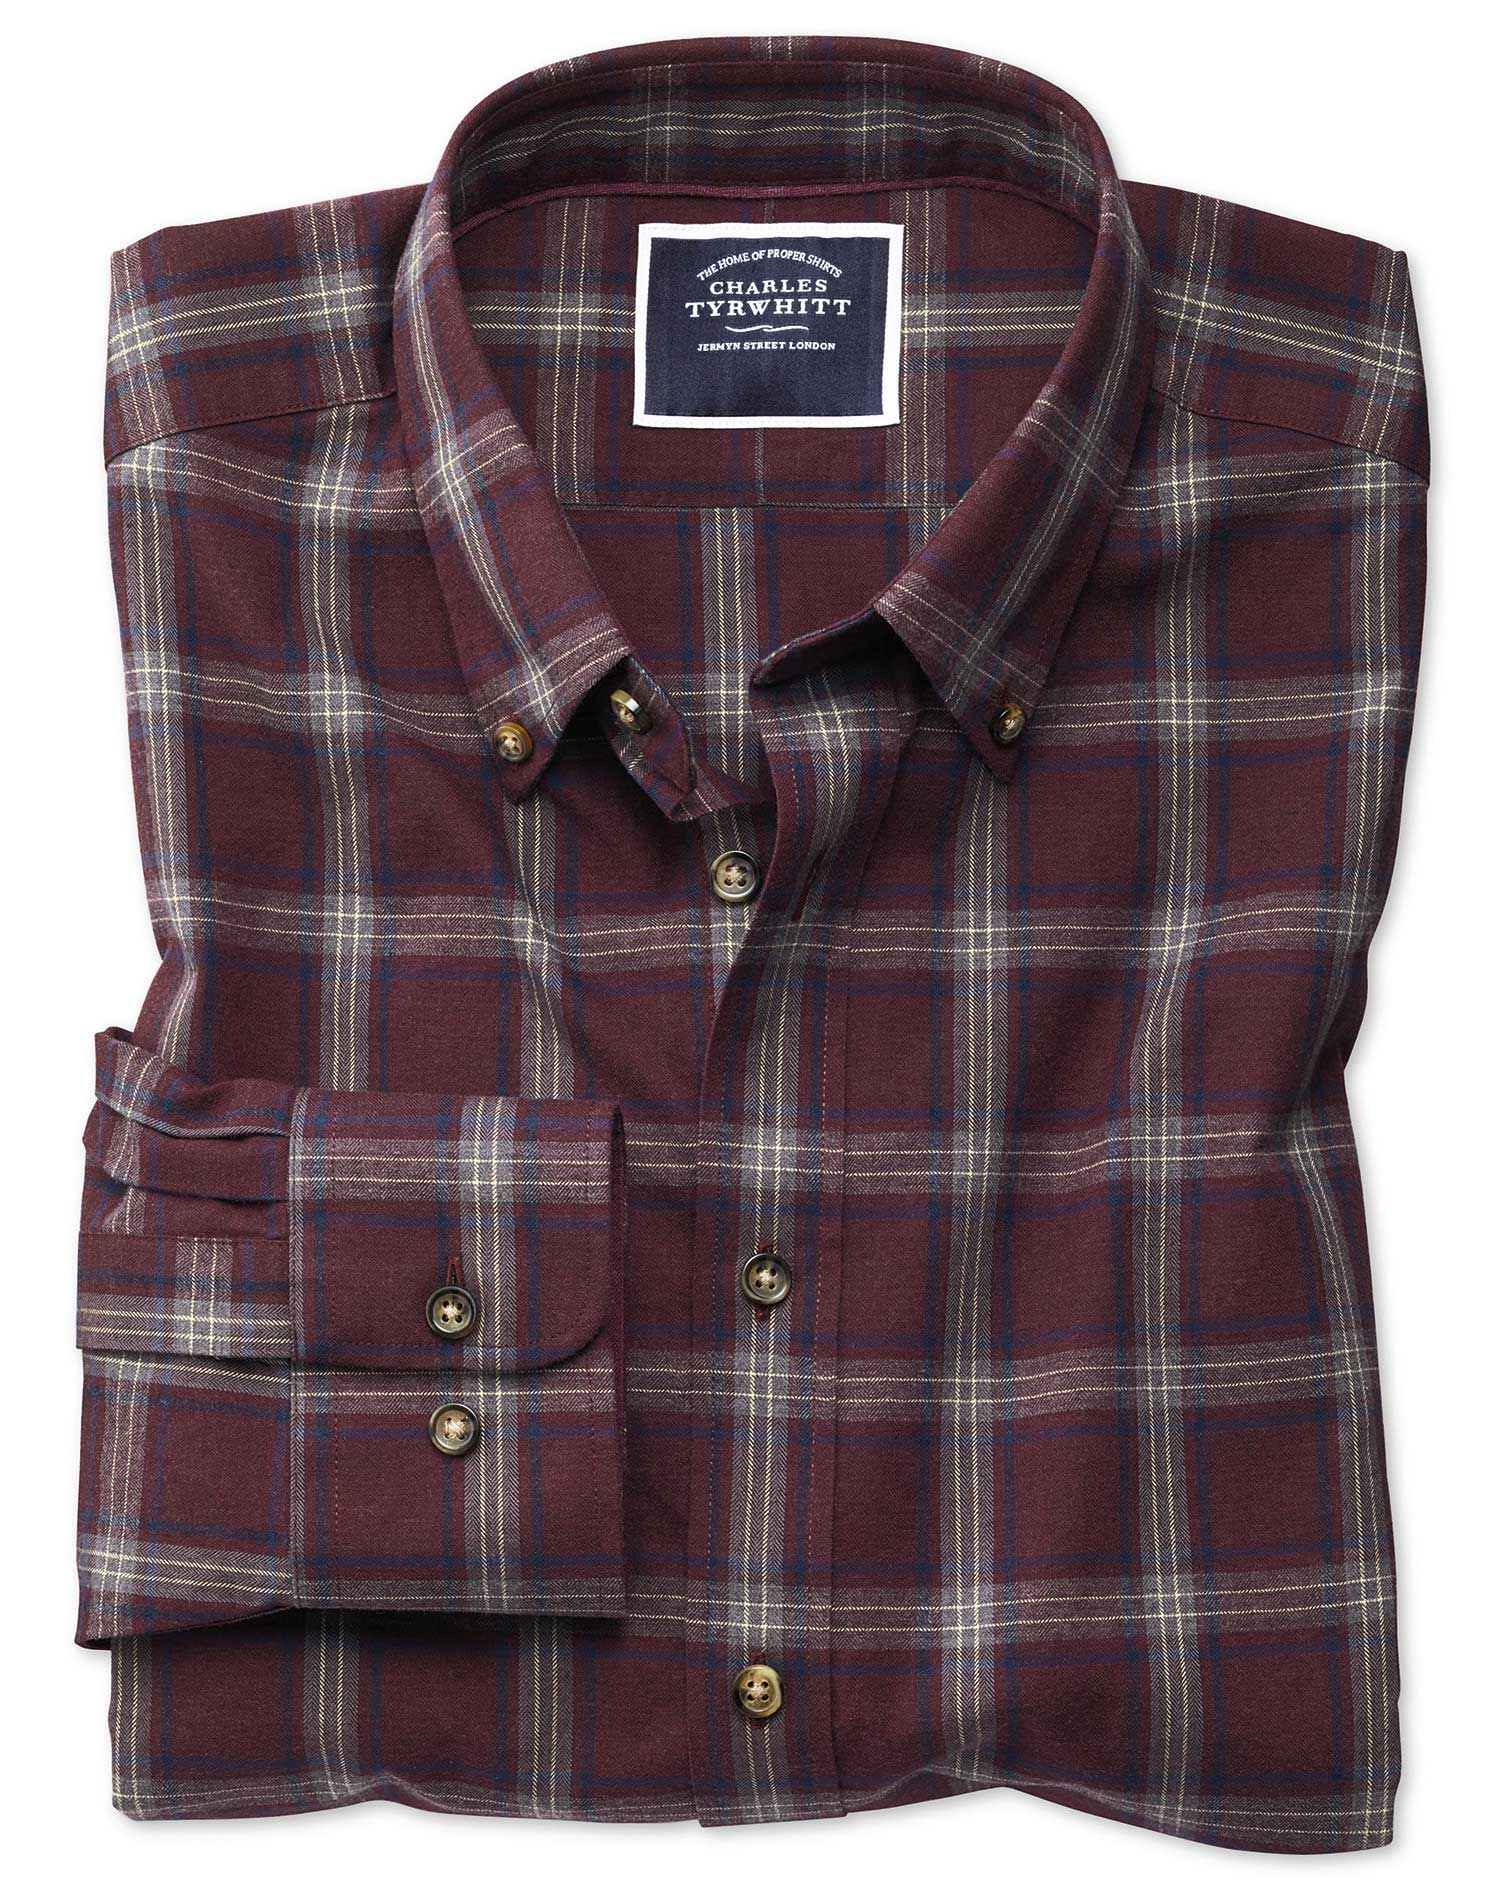 Slim Fit Burgundy and Blue Check Herringbone Melange Cotton Shirt Single Cuff Size XXL by Charles Tyrwhitt from Charles Tyrwhitt